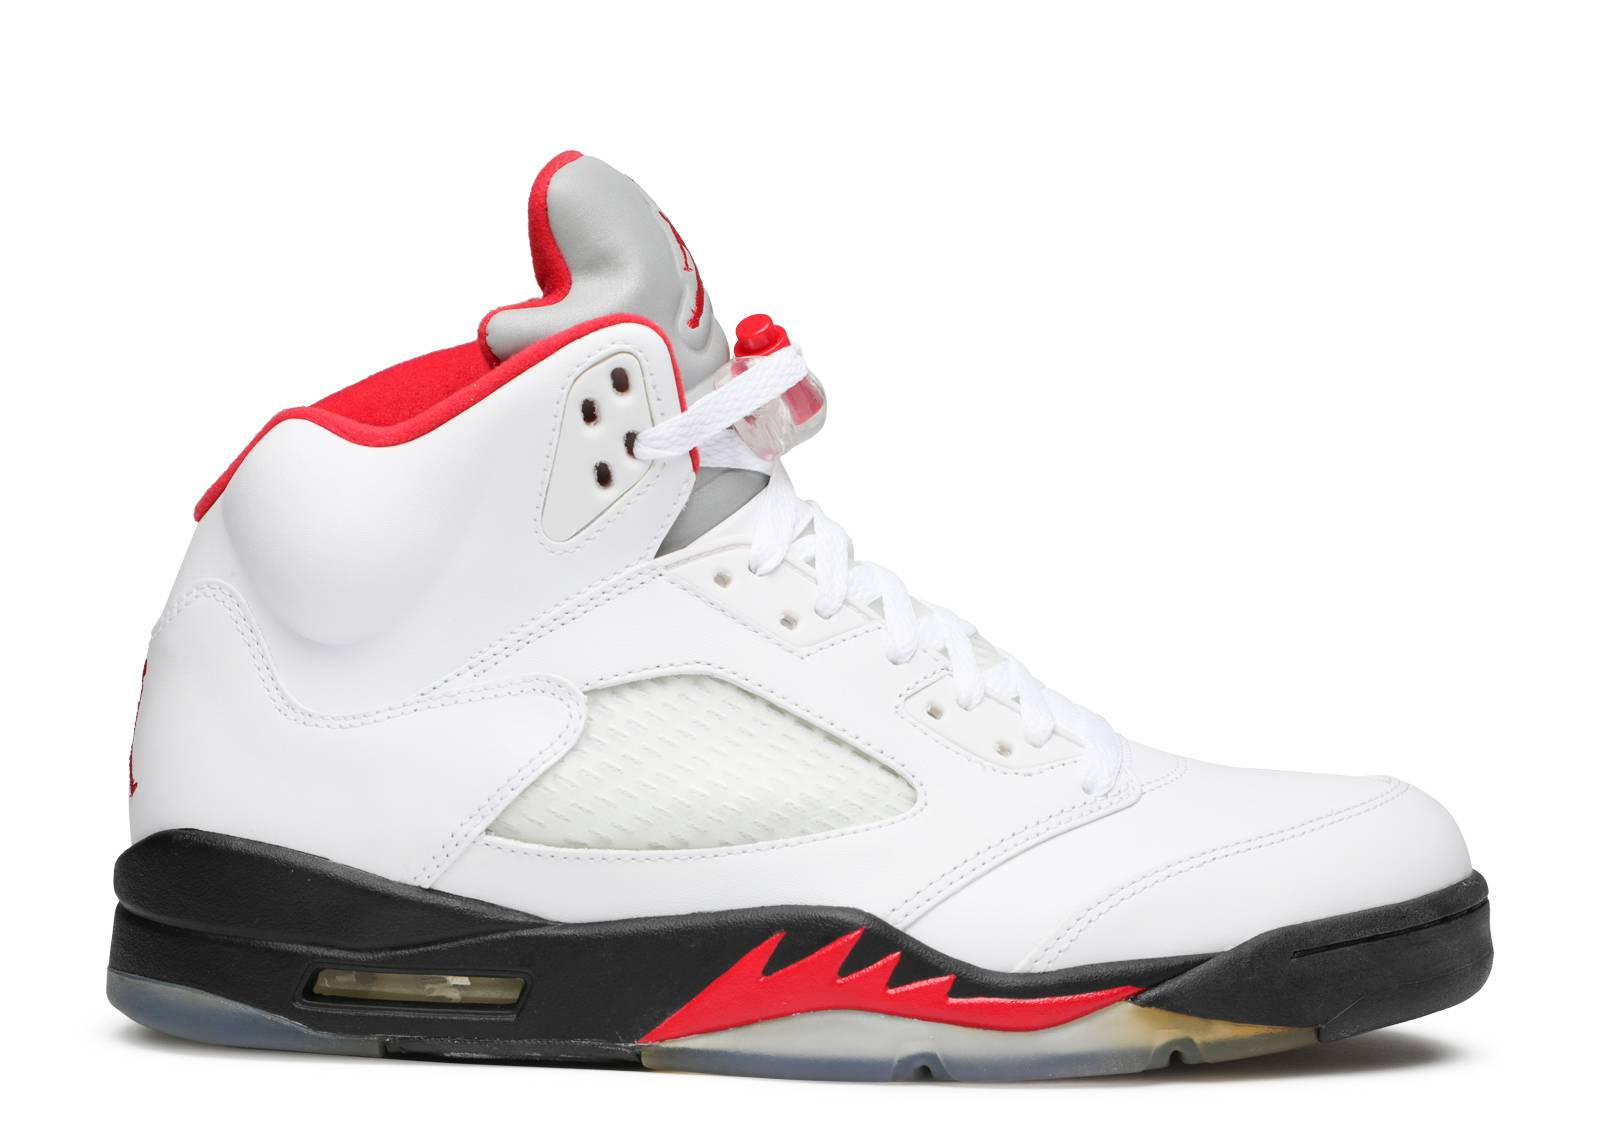 9e382cfeffc3 Air Jordan 5 Retro